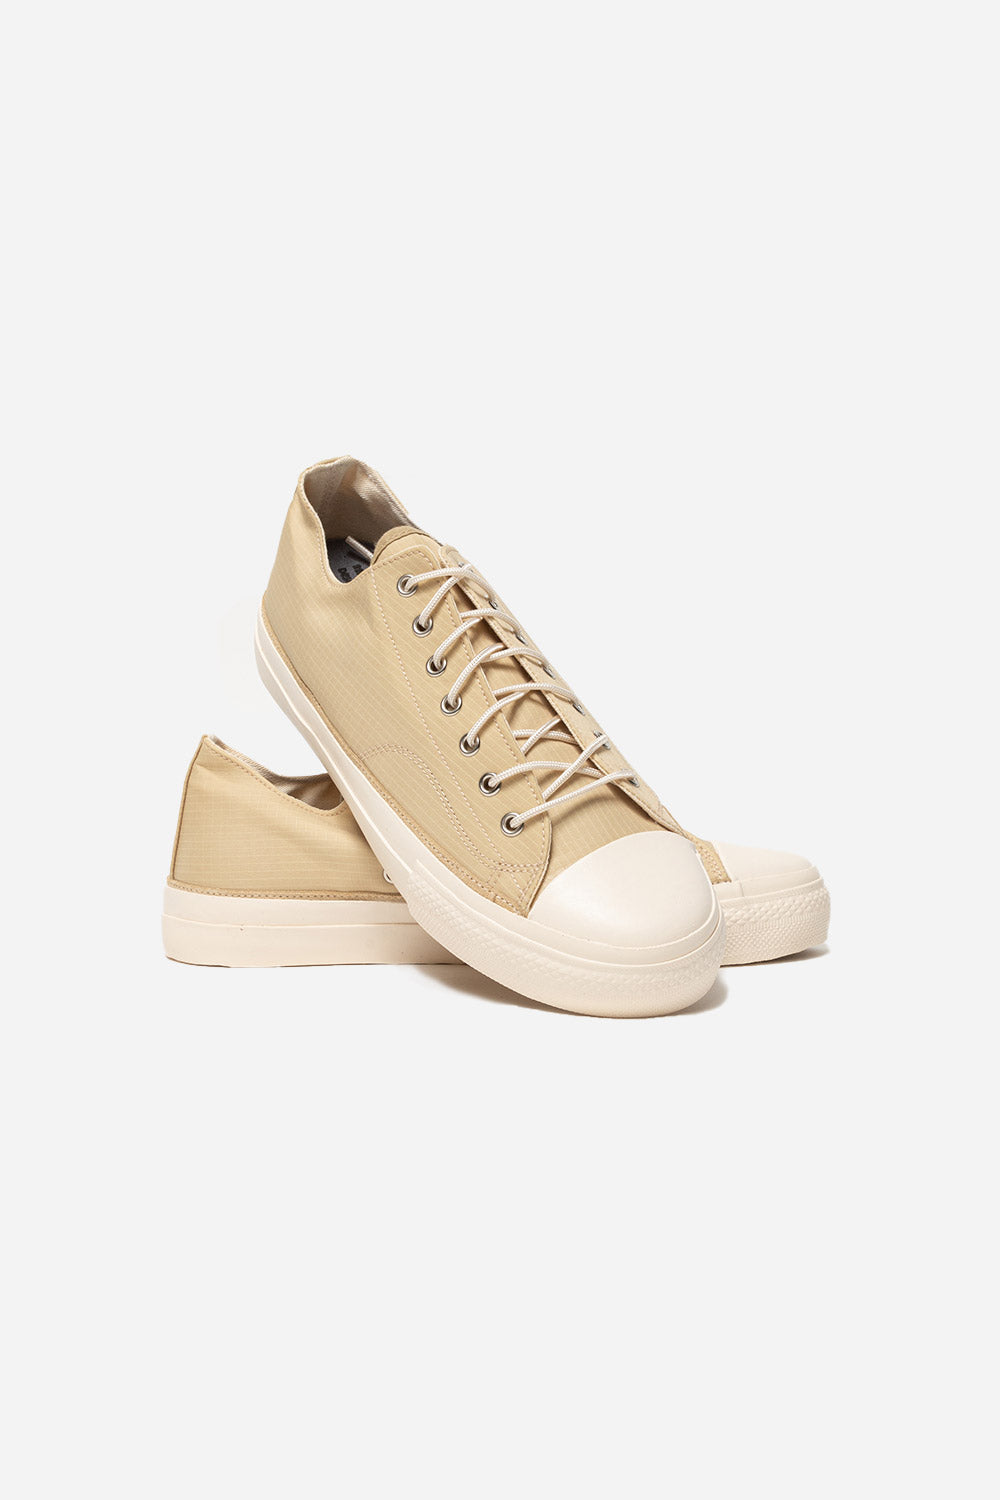 reproduction-of-found-us-military-trainers-beige